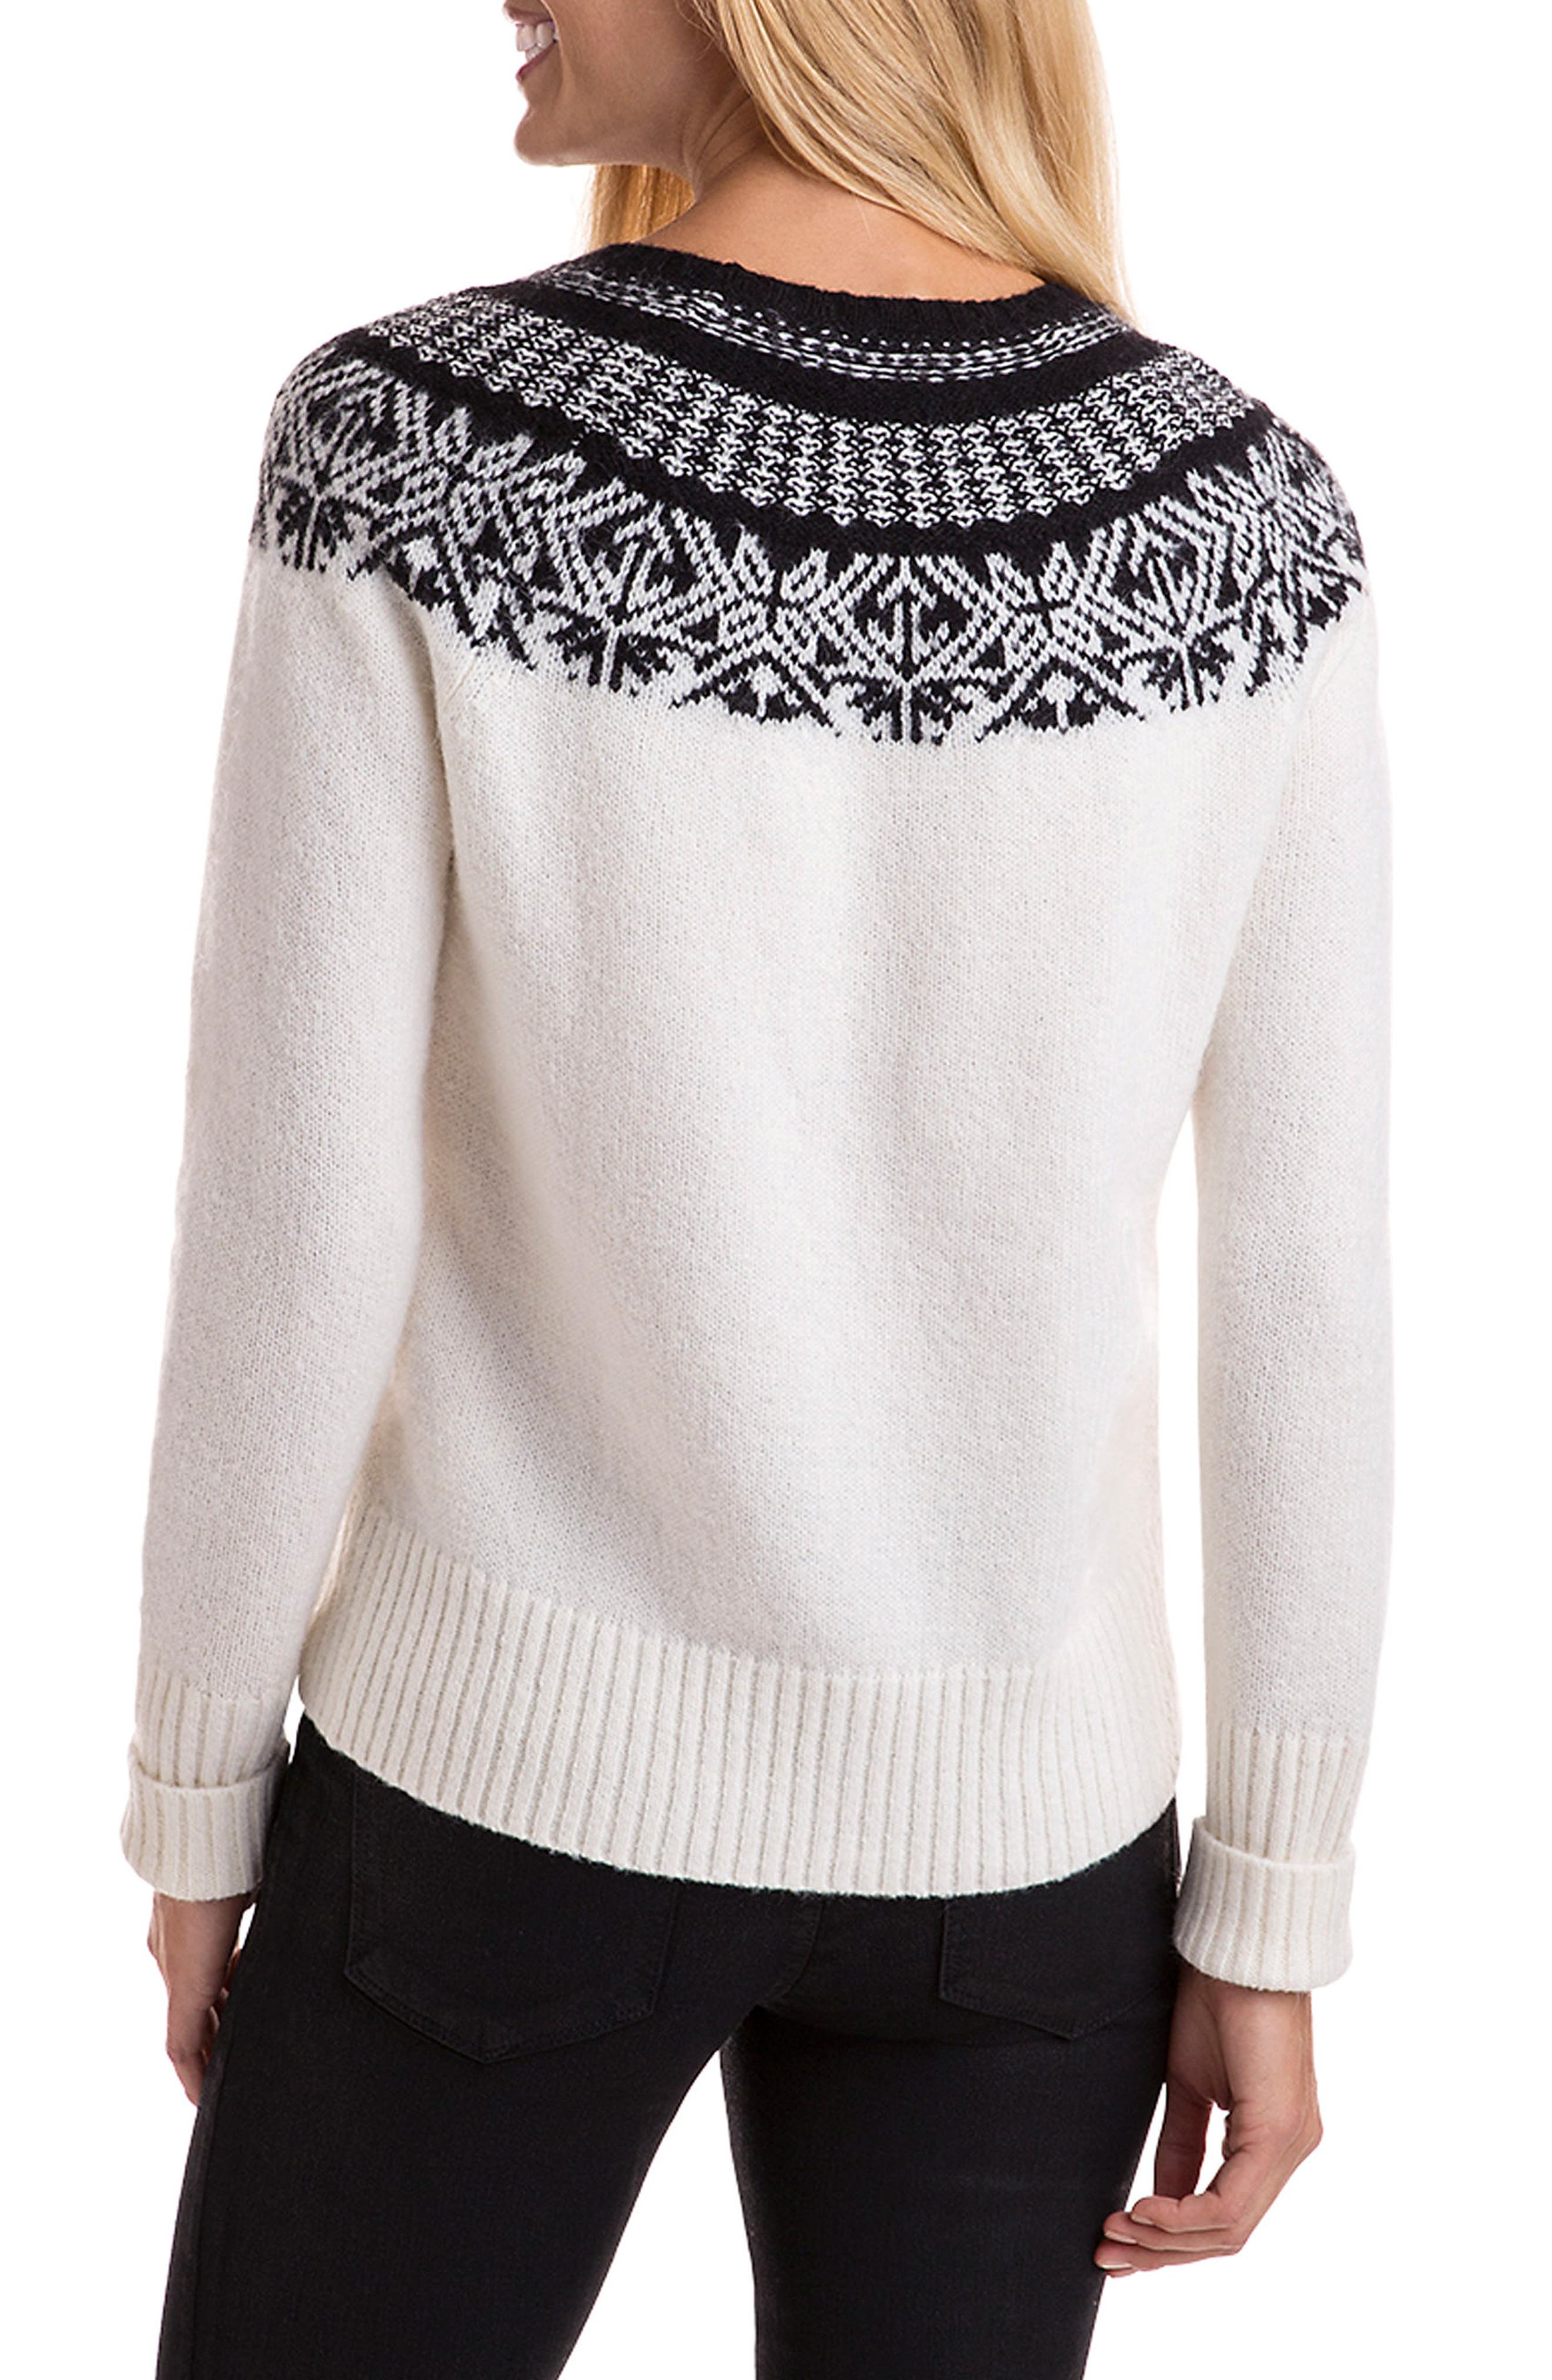 Nordic Fair Isle Sweater,                             Alternate thumbnail 2, color,                             Ivory